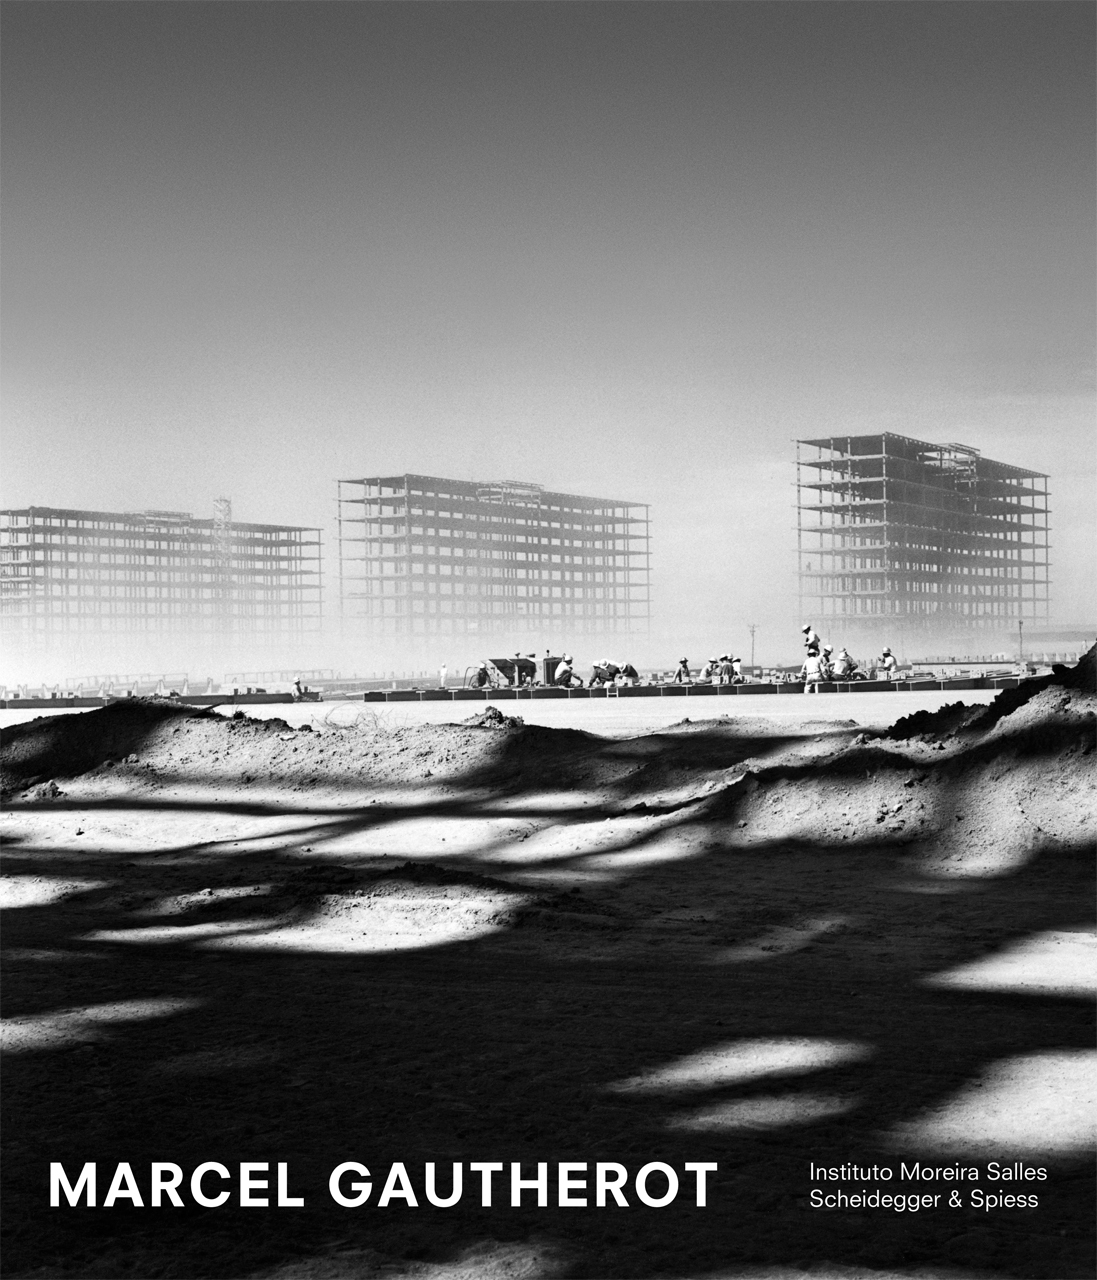 Marcel Gautherot: The Monograph